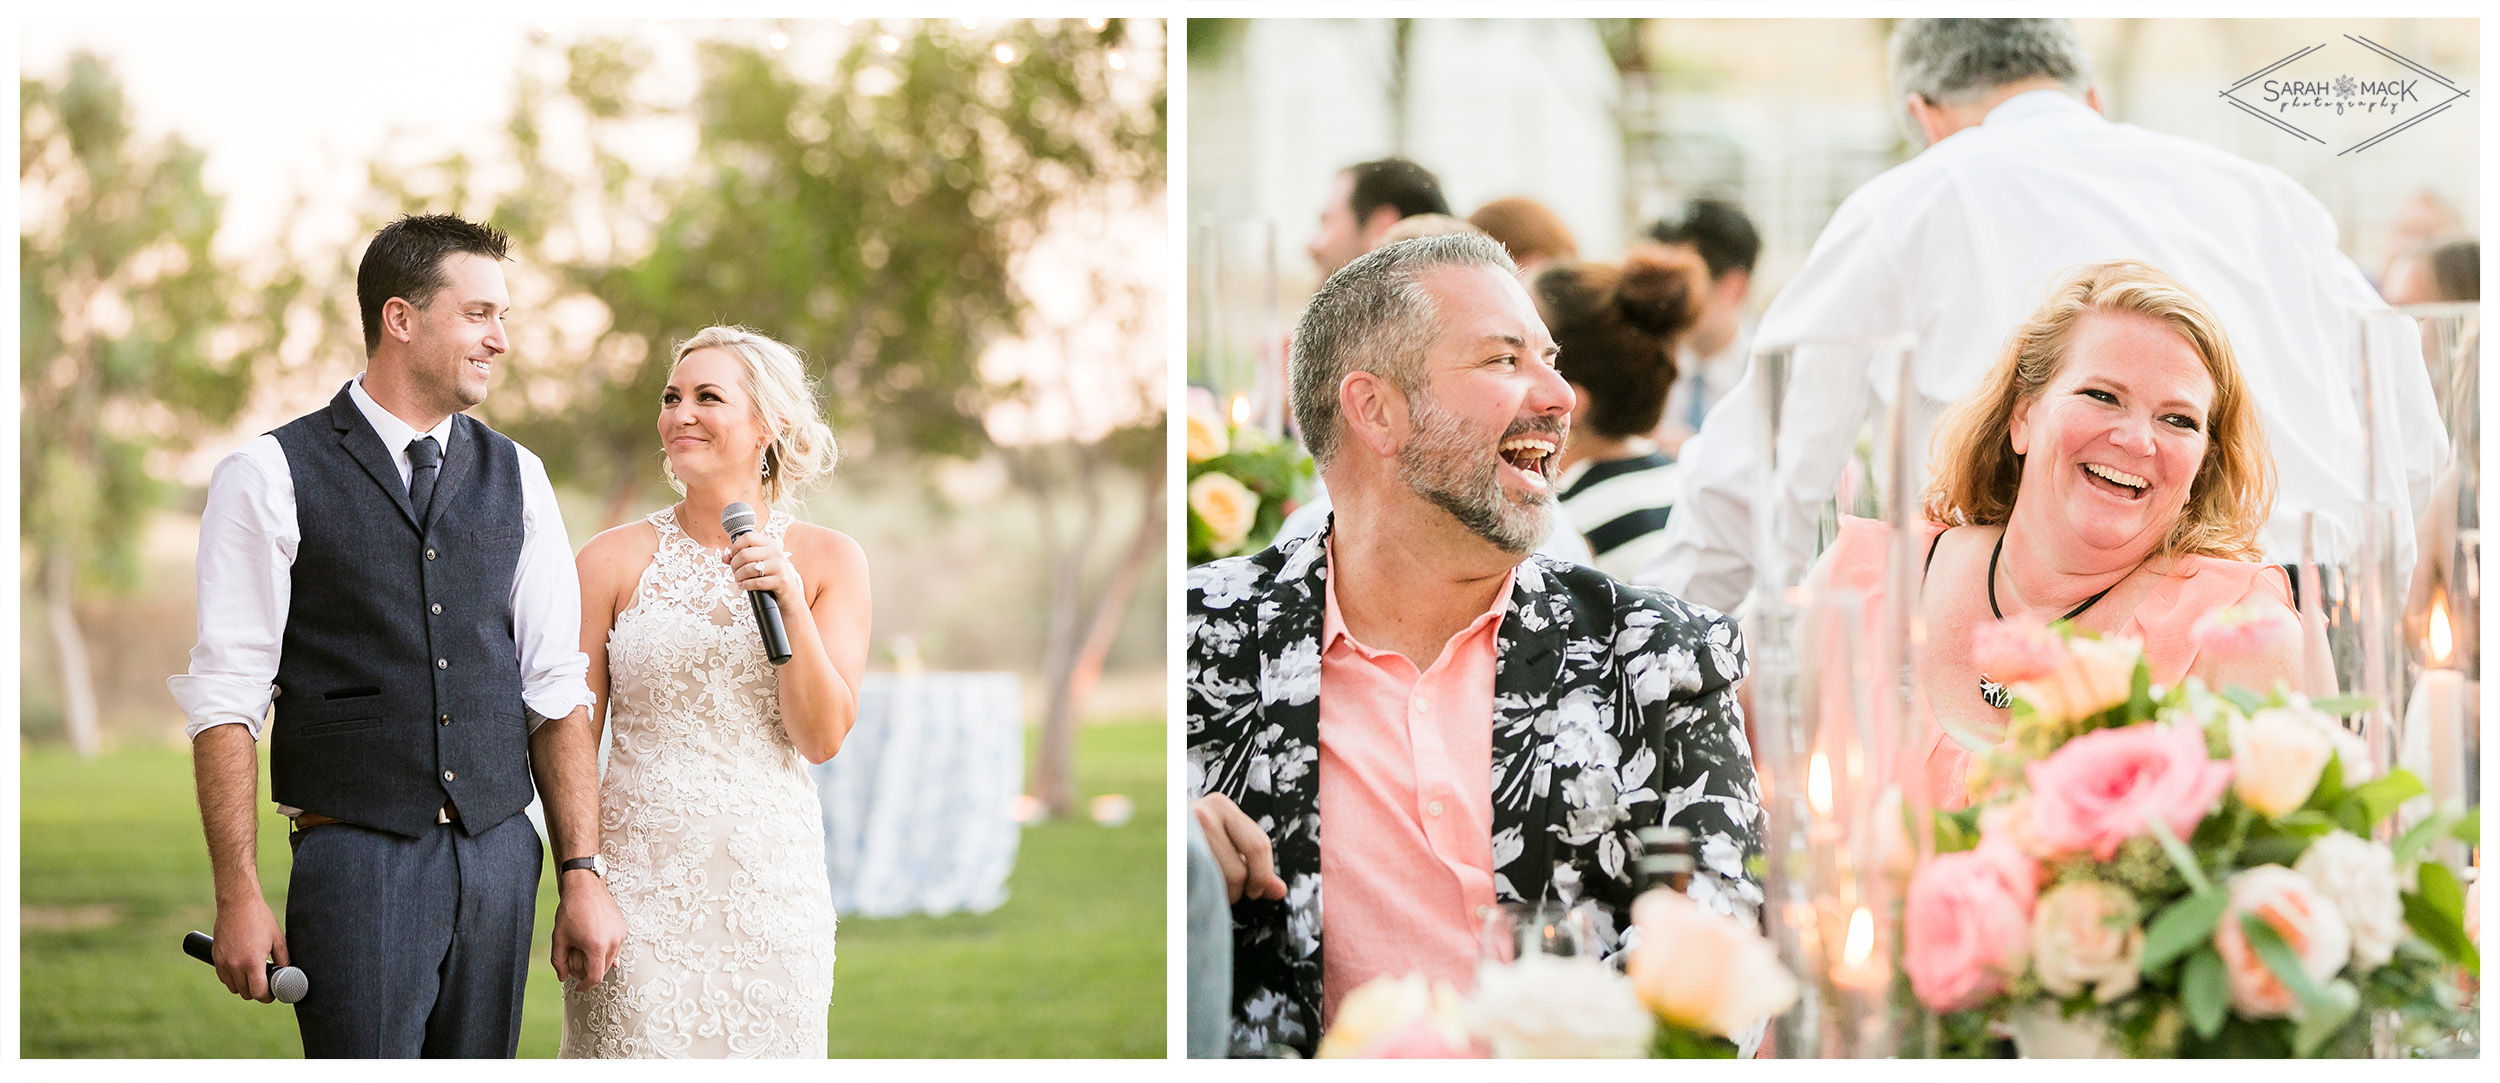 MA-Chandler-Ranch-Paso-Robles-Wedding-Photography-76.jpg